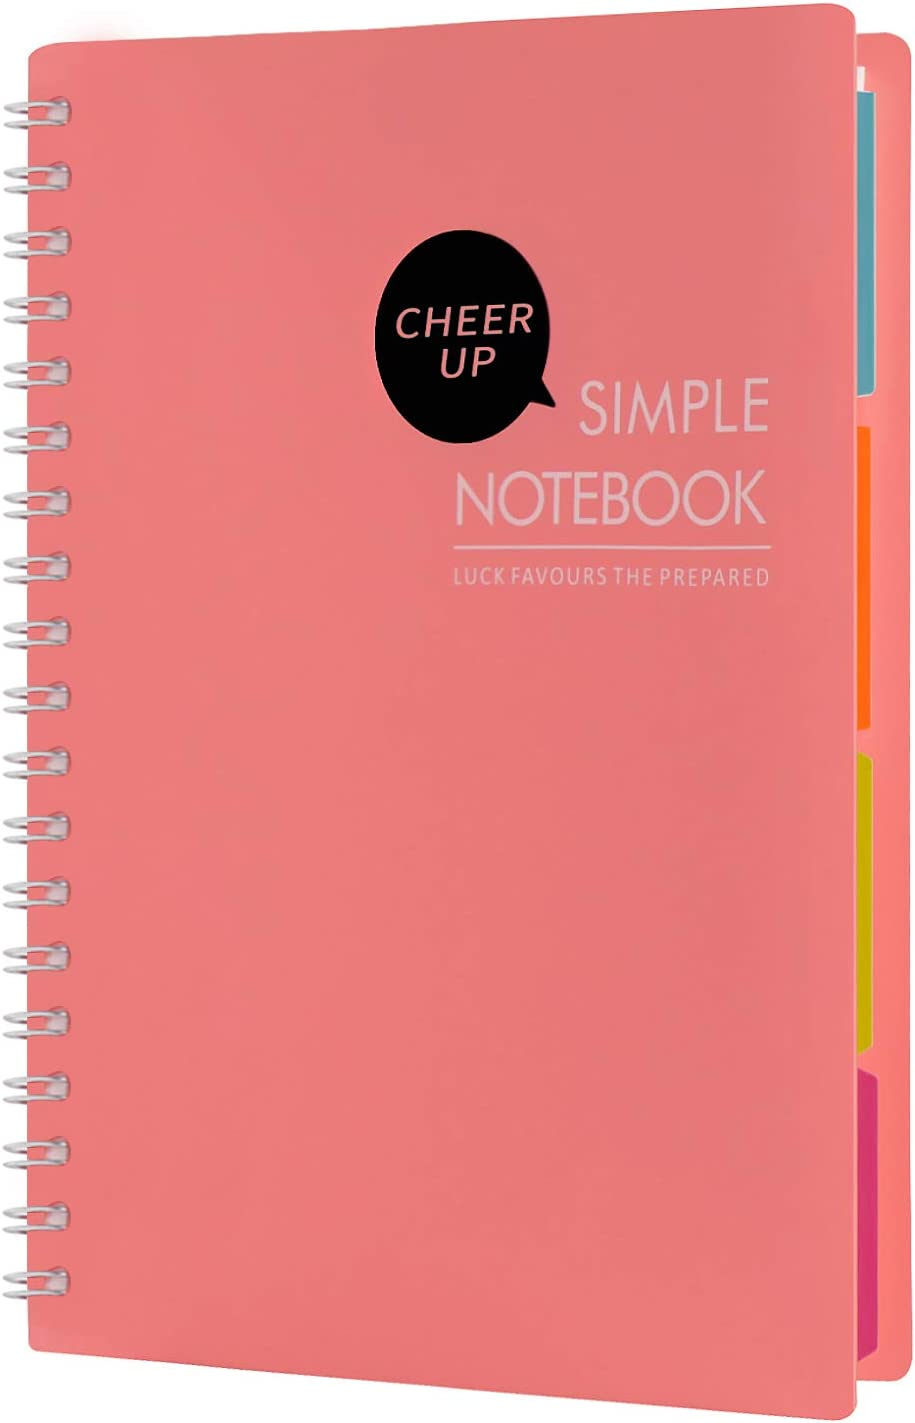 "Cheerup Spiral Notebook, B5 10"" x 7"", 4 Subjects with Divider, 240 Pages Wide Ruled (Pink)"